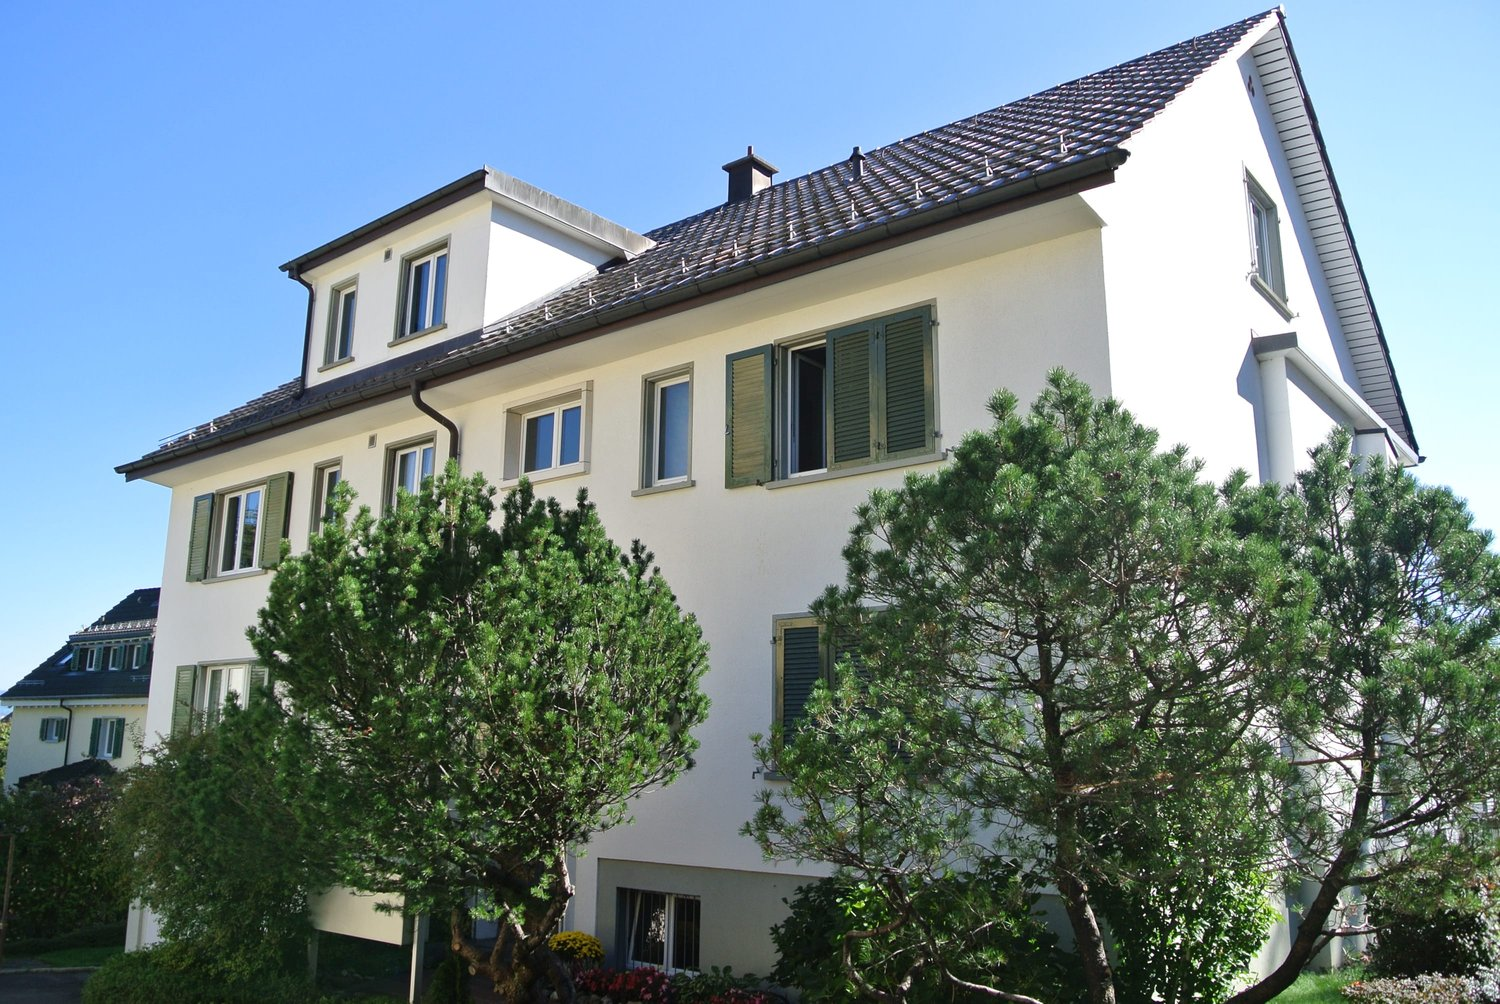 Obere Weidstrasse 8